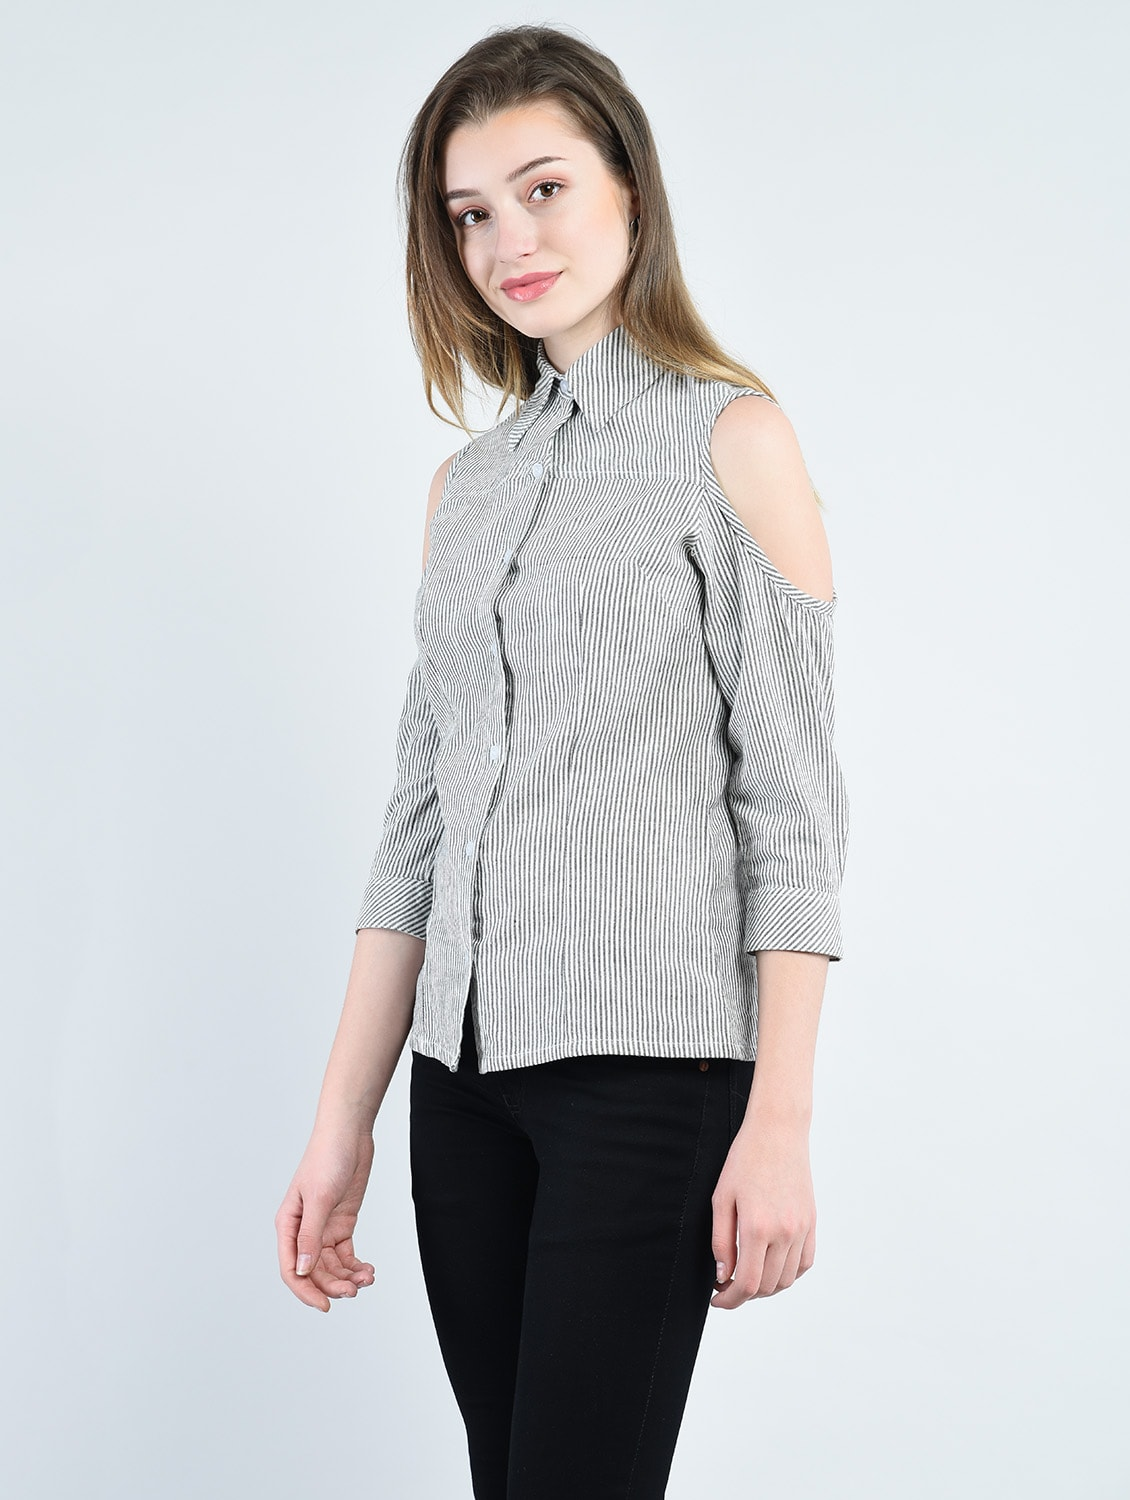 c0e14ced9da92 Buy Grey Striped Cold Shoulder Shirt for Women from Peptrends for ₹984 at  27% off